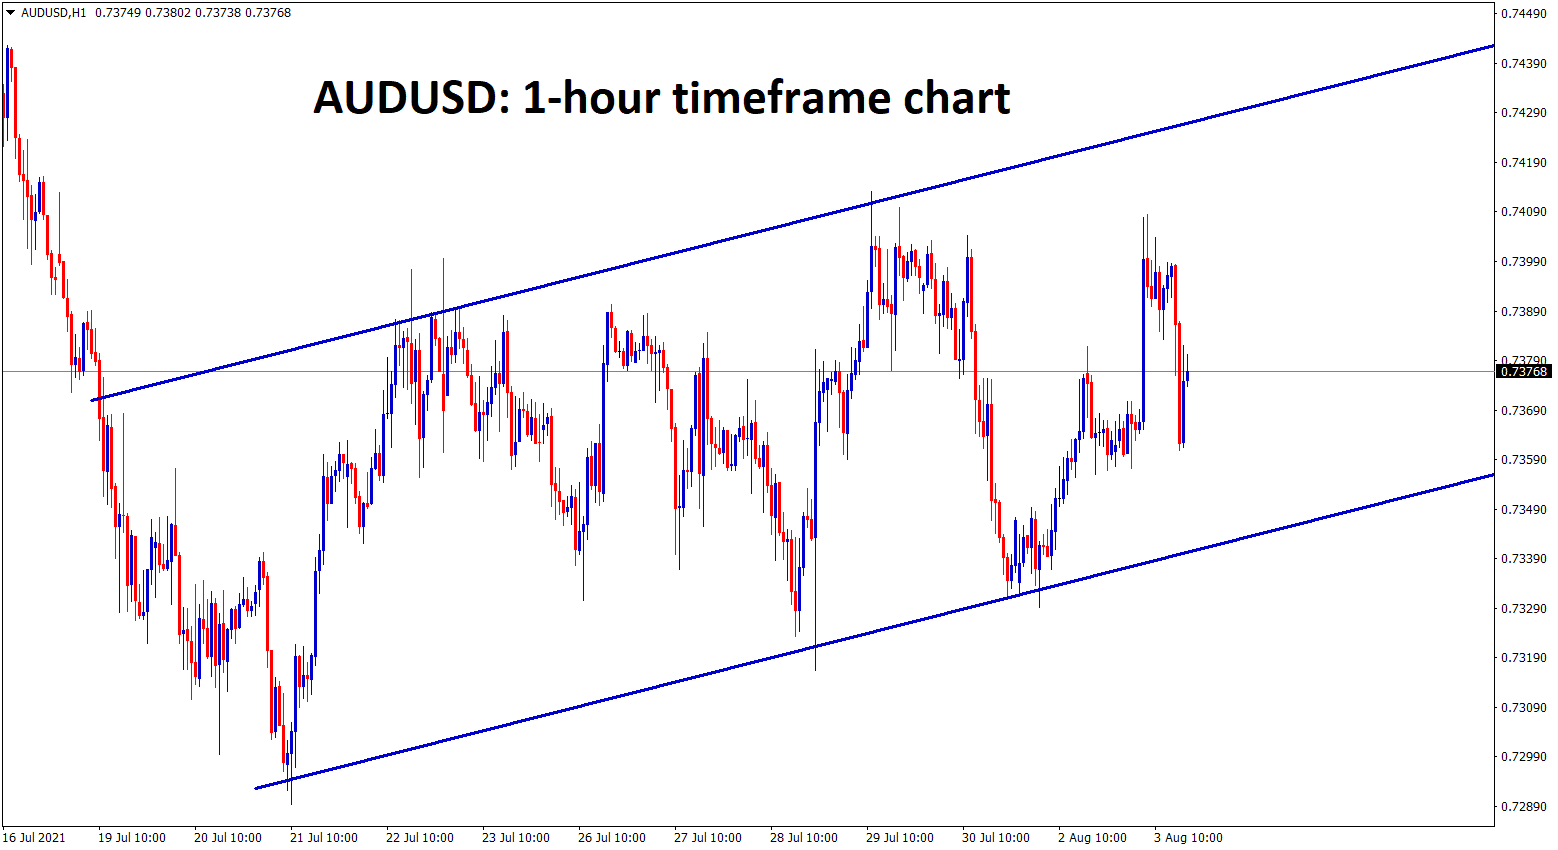 AUDUSD is still ranging and consolidating in a specific price levels